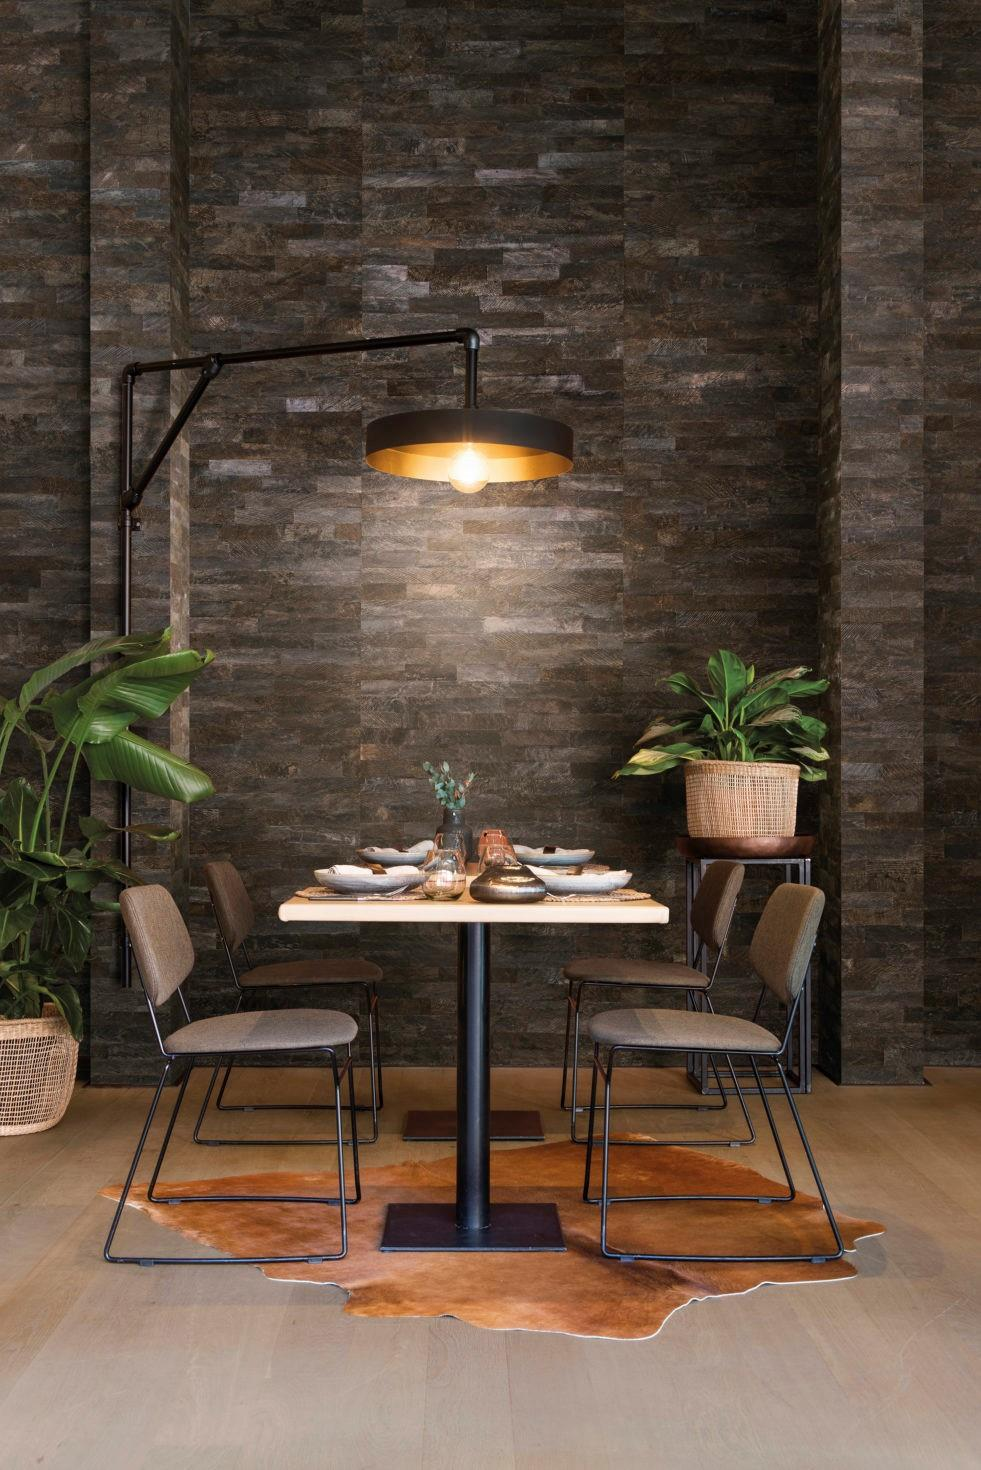 Omexco Sereya Coconut Bark Wallcovering